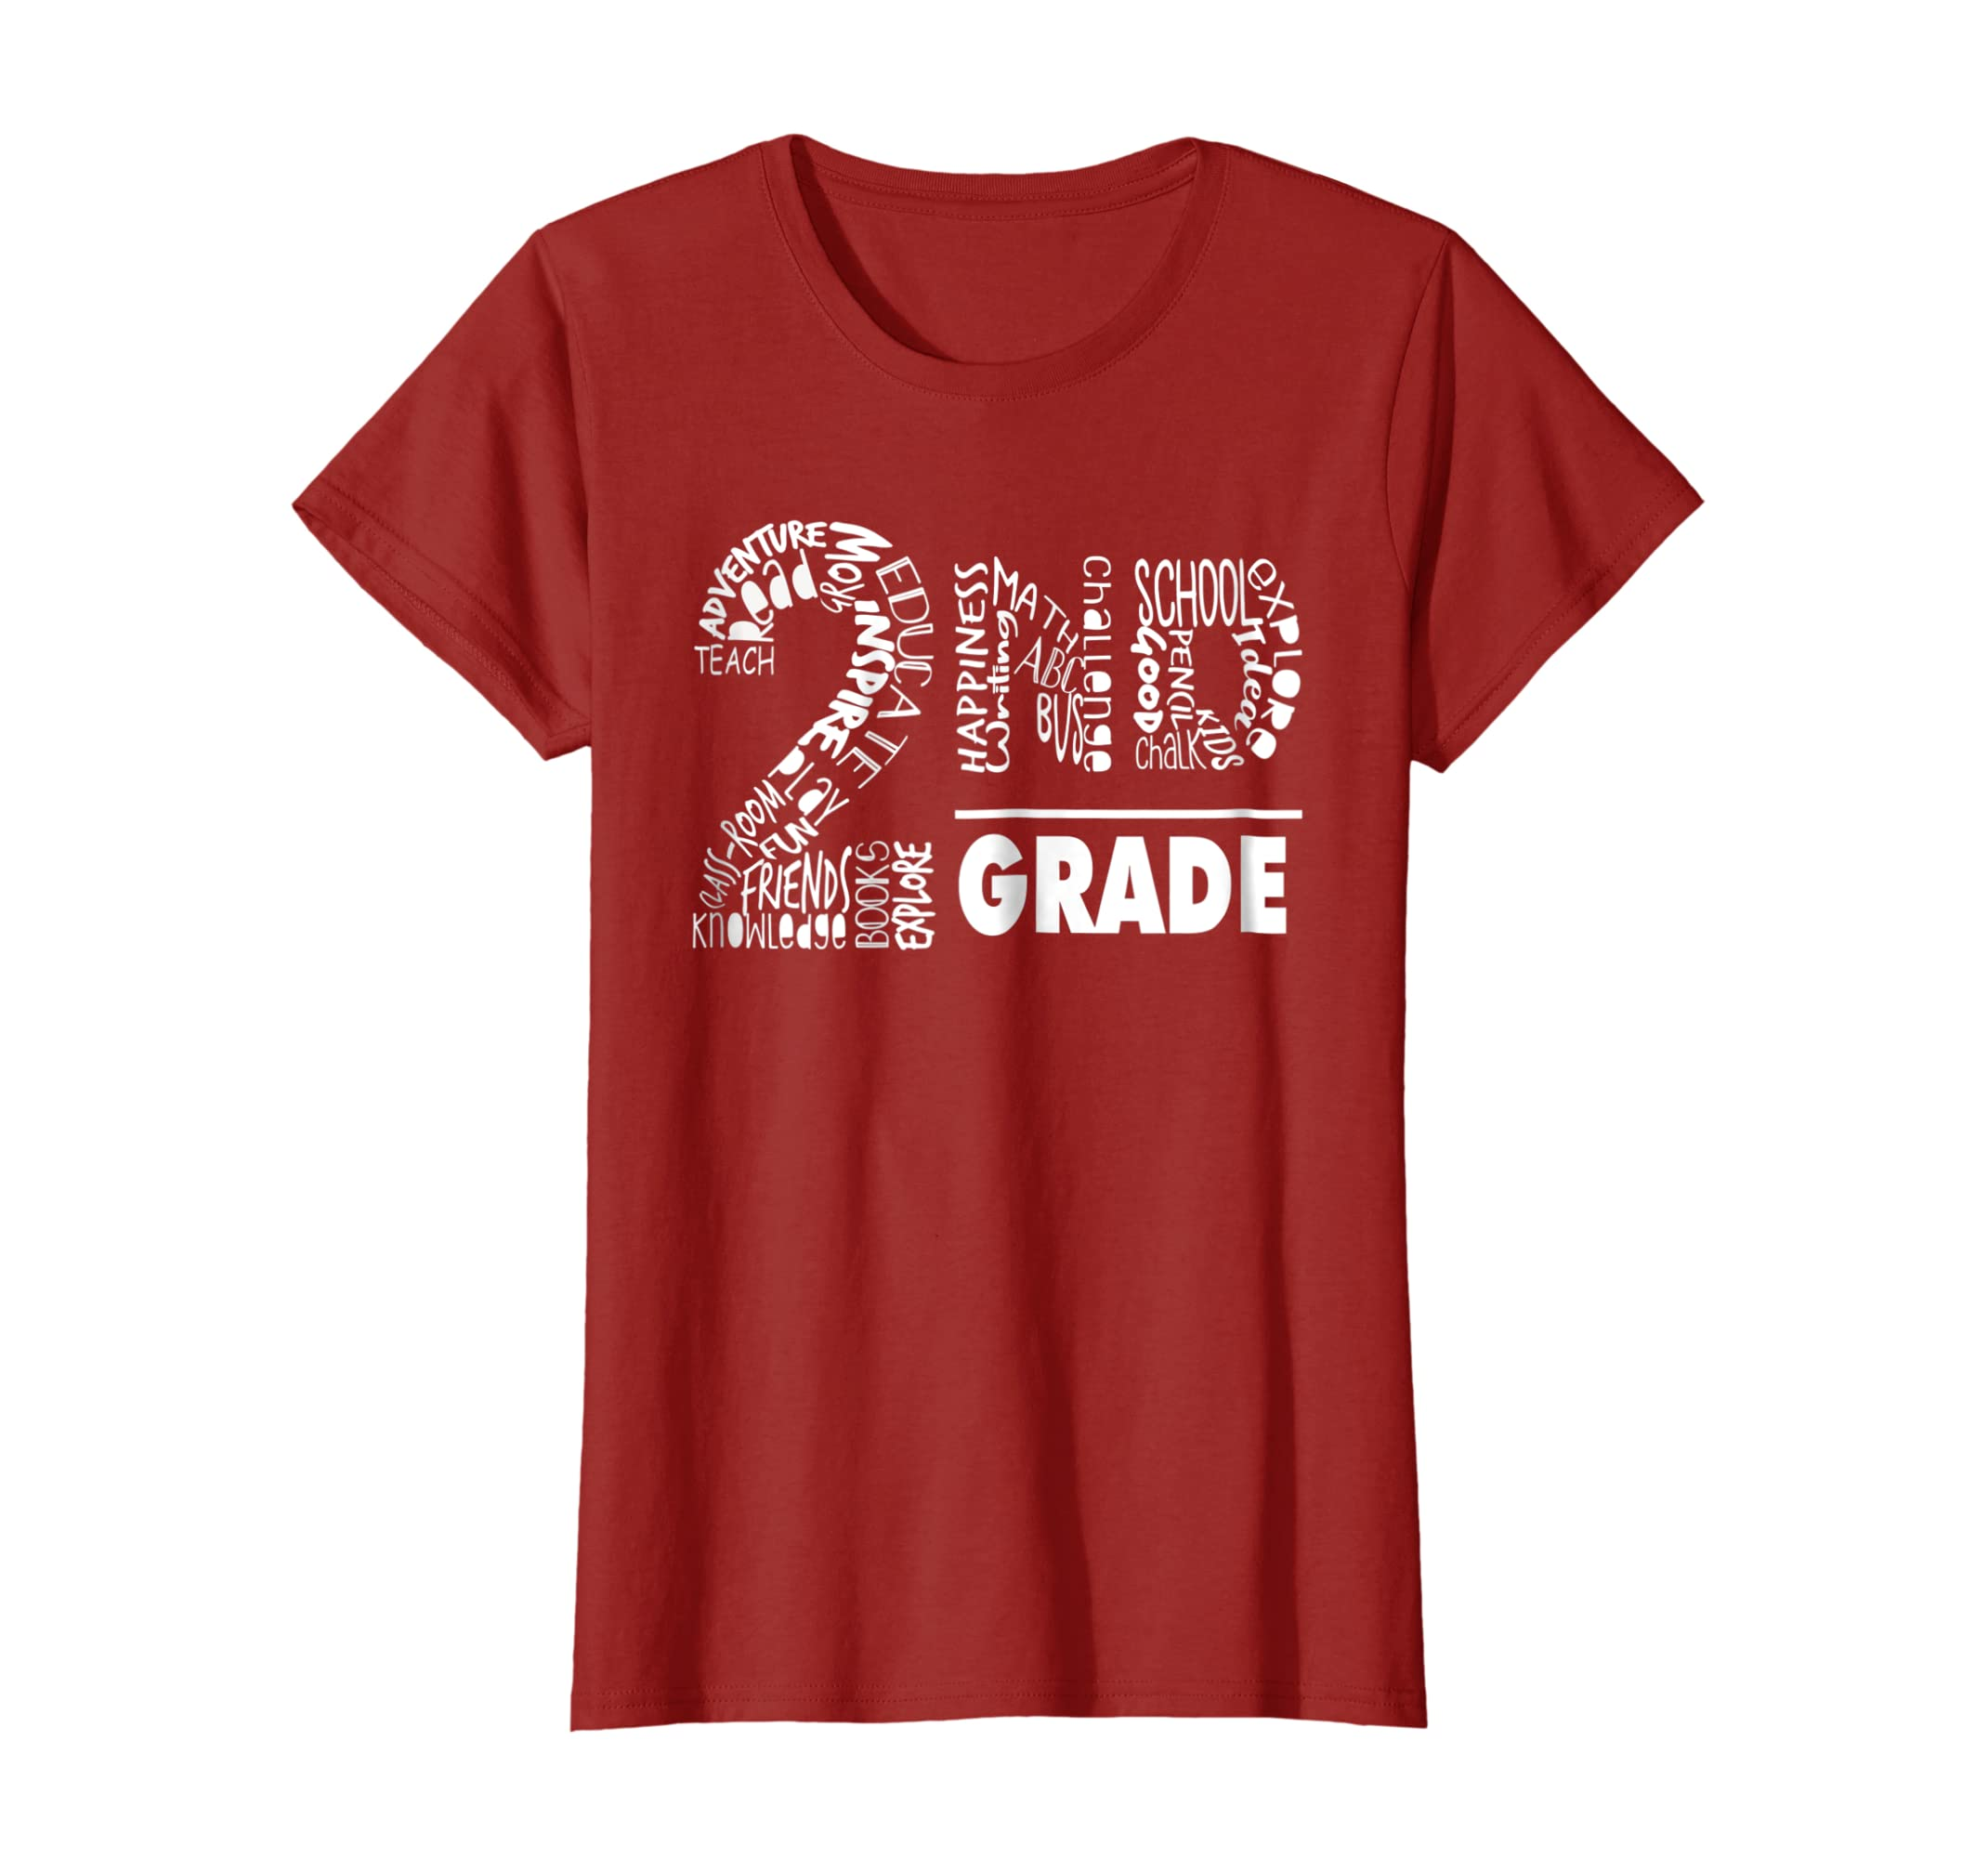 Second Grade Tee Shirt For Teachers & Students Of 2nd Grade-Newstyleth